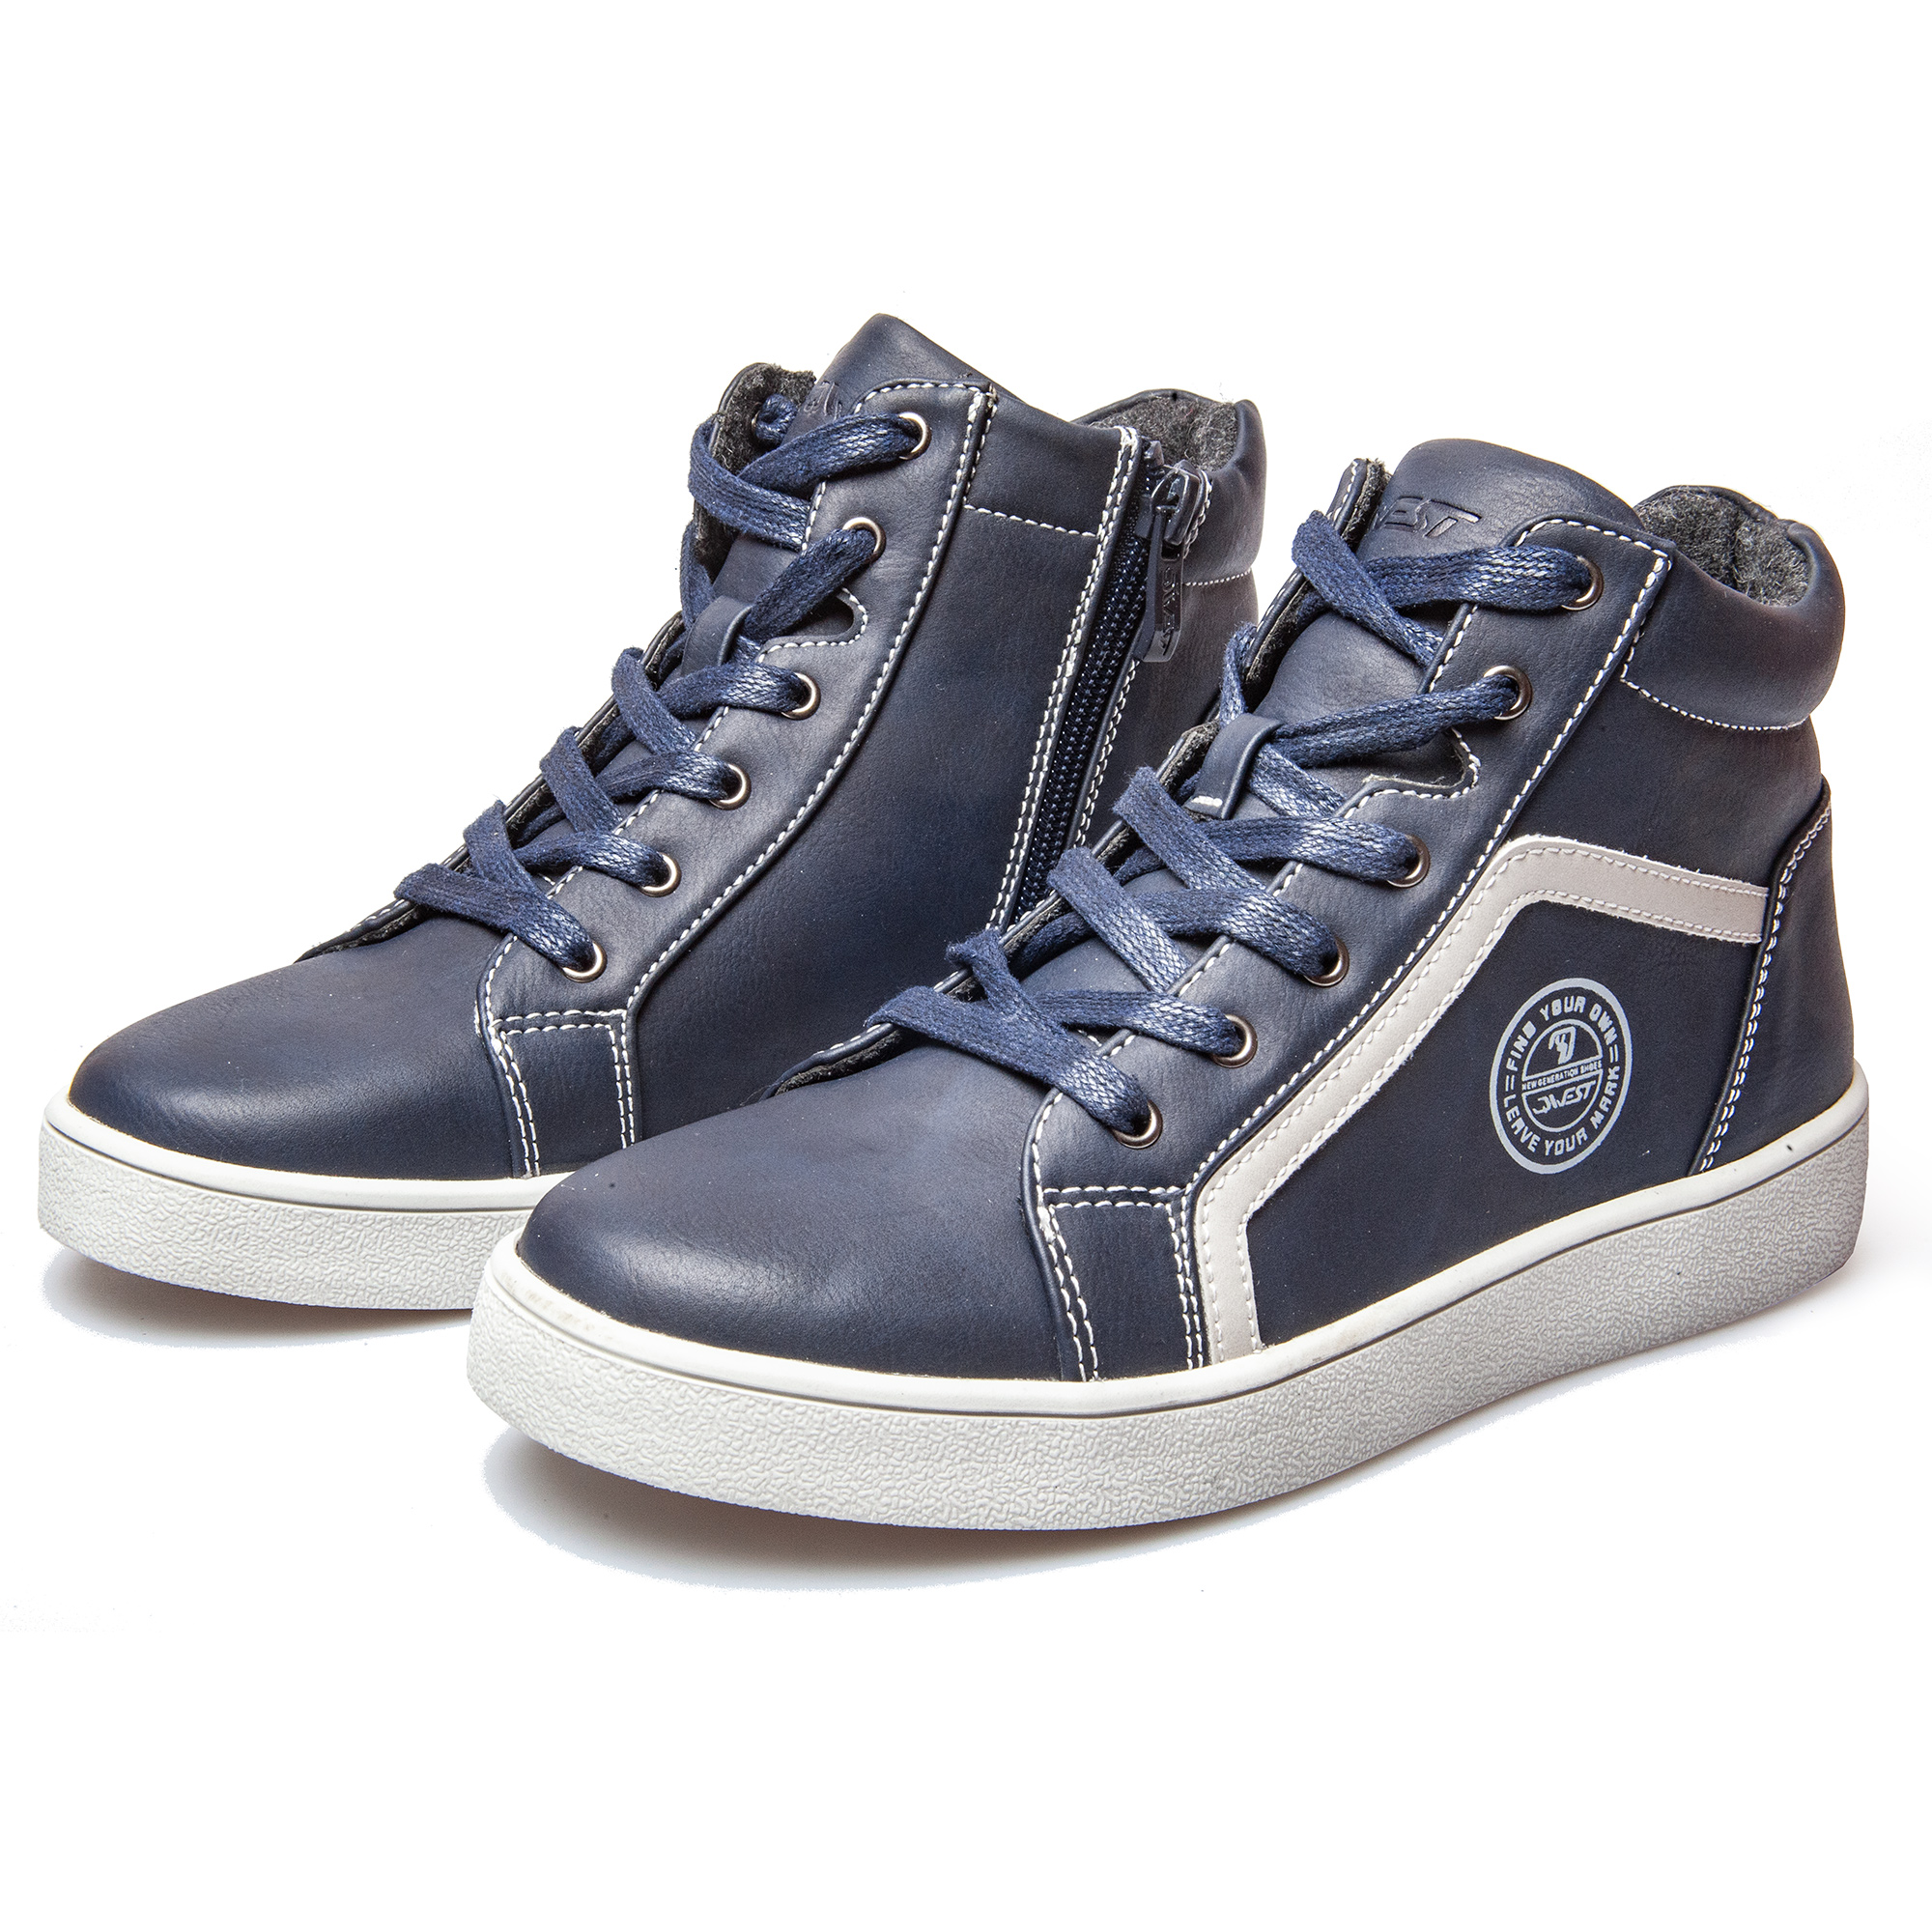 Shoes Teenage Shoes For Boys Age 92B-LM-1503 Quest Shoes For Children 33-38 # Stylish, Fashion, Durable Shoes